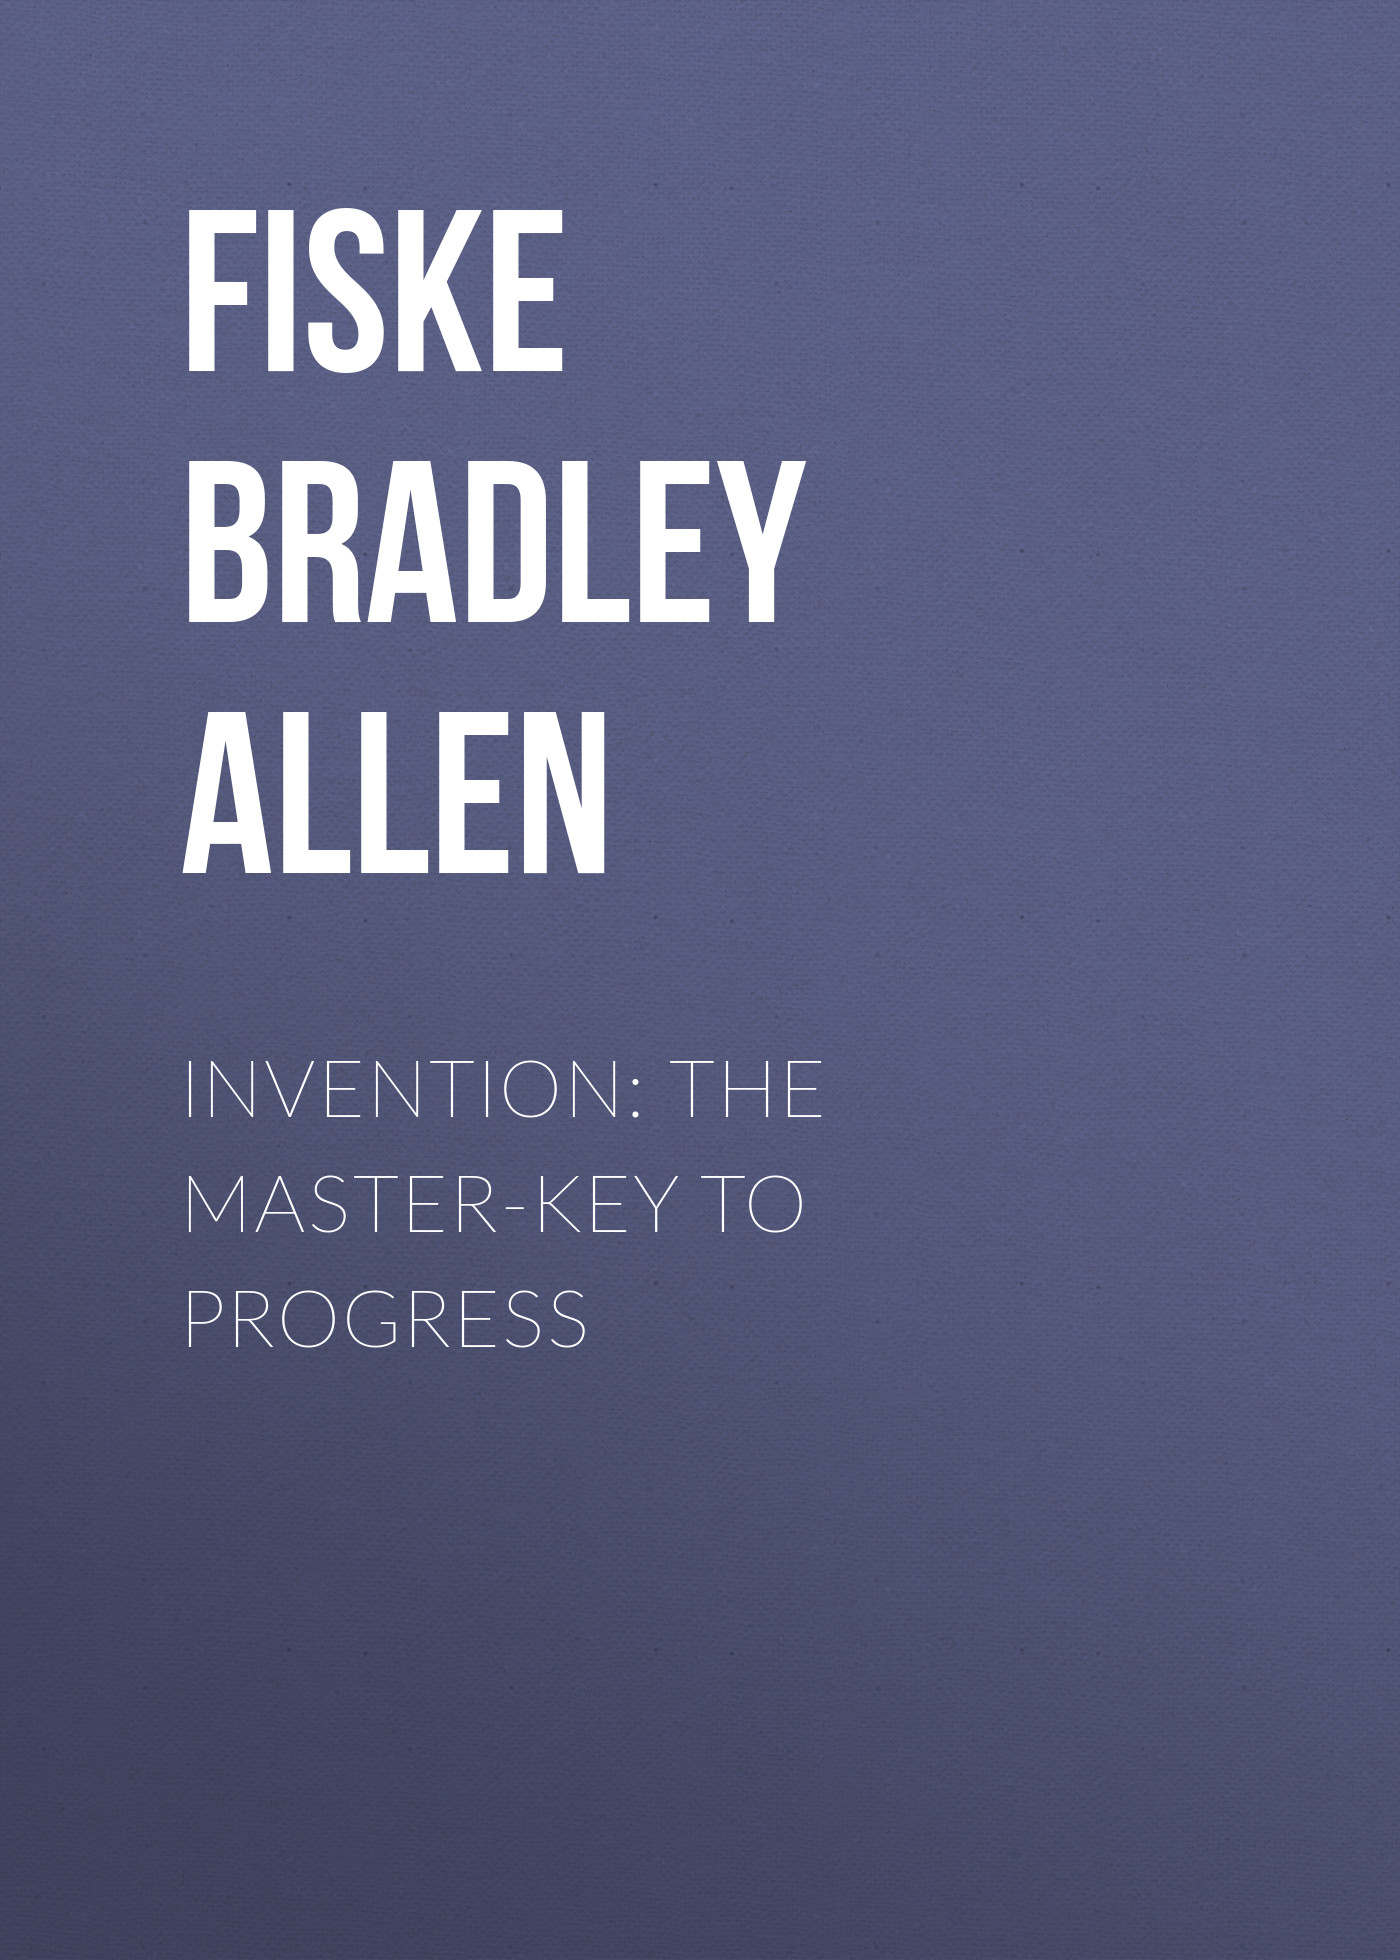 Fiske Bradley Allen Invention: The Master-key to Progress allen bradley 1756 a7 b 1756a7 controllogix 7 slots chassis new and original 100